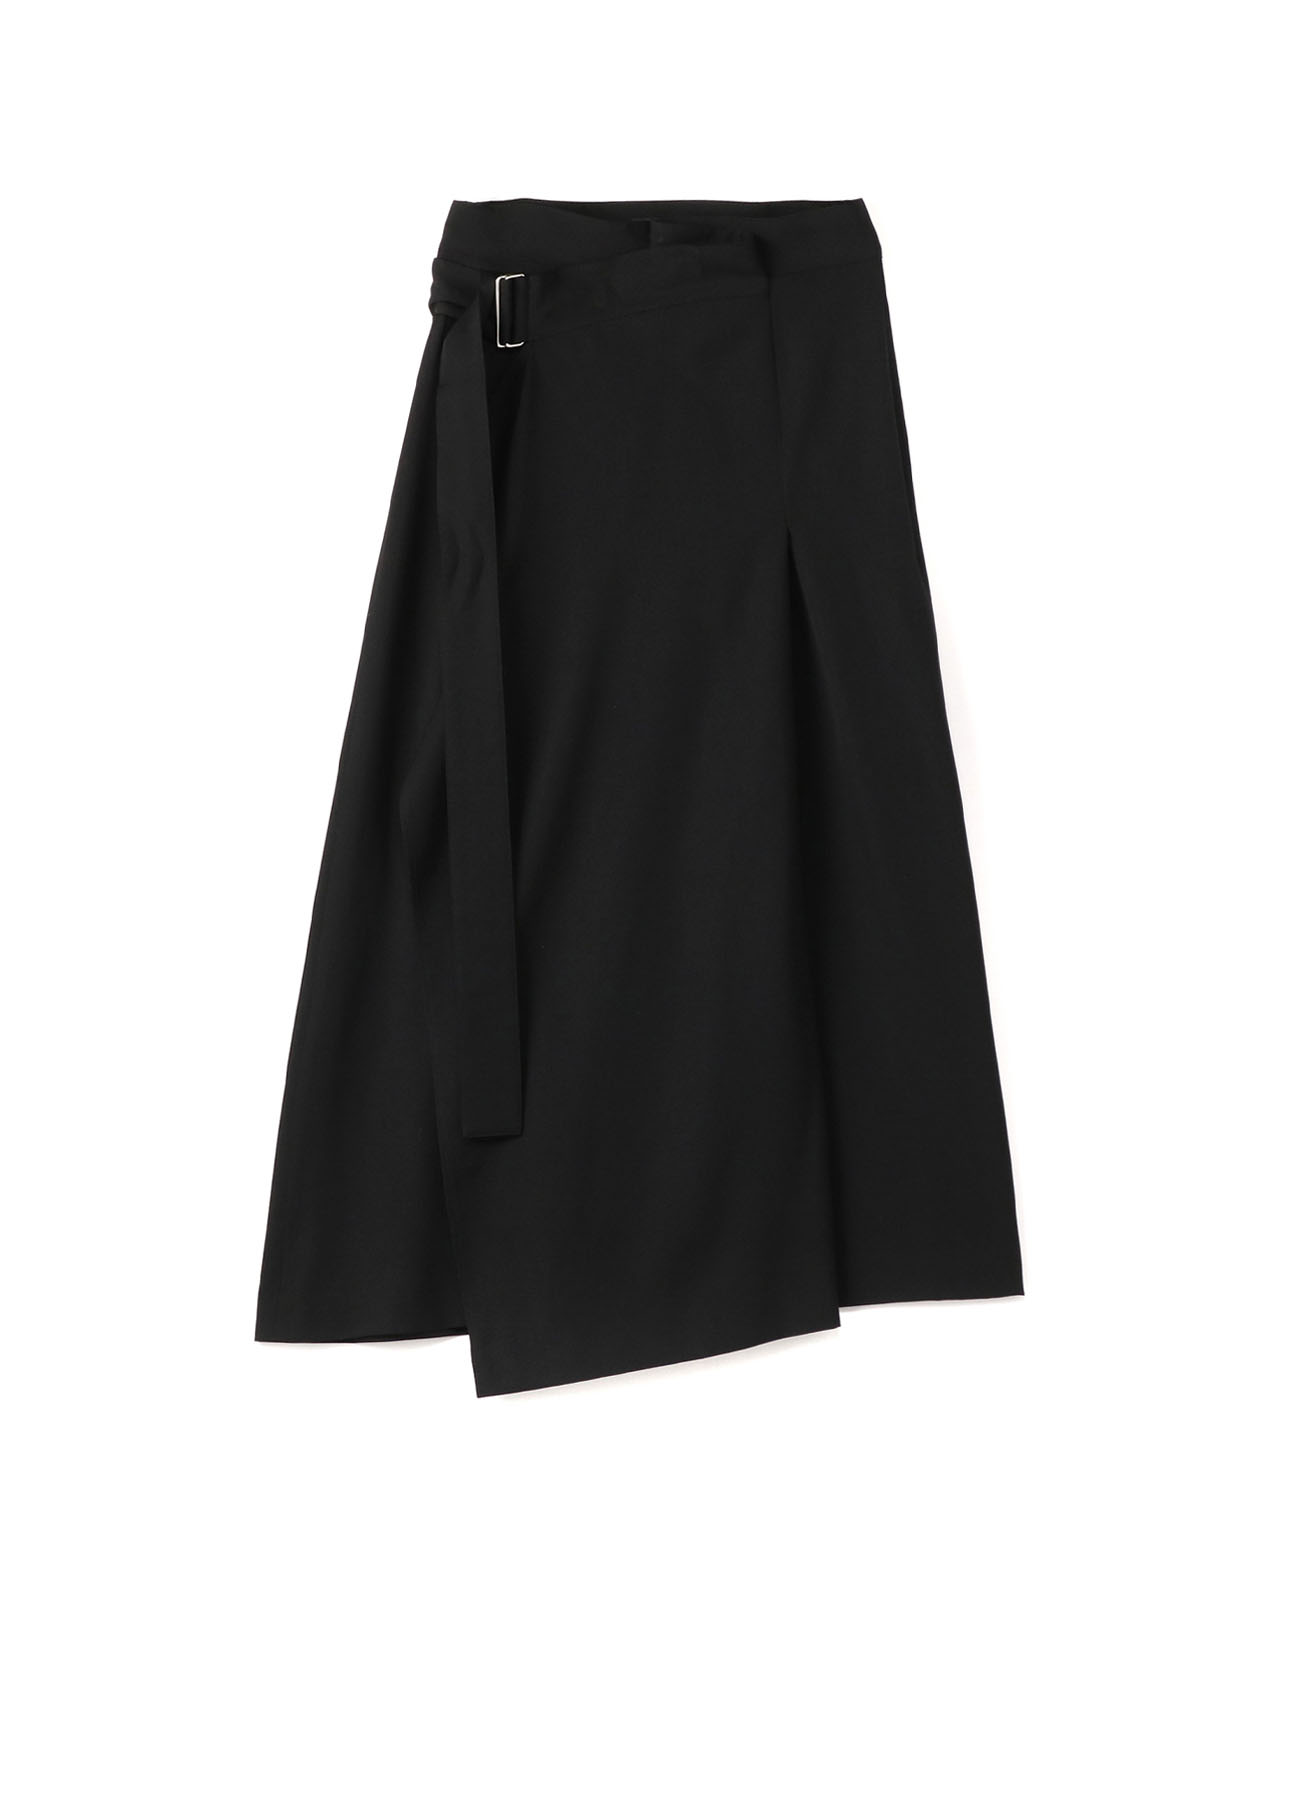 WOOL GABARDINE DOUBLE BELT SKIRT